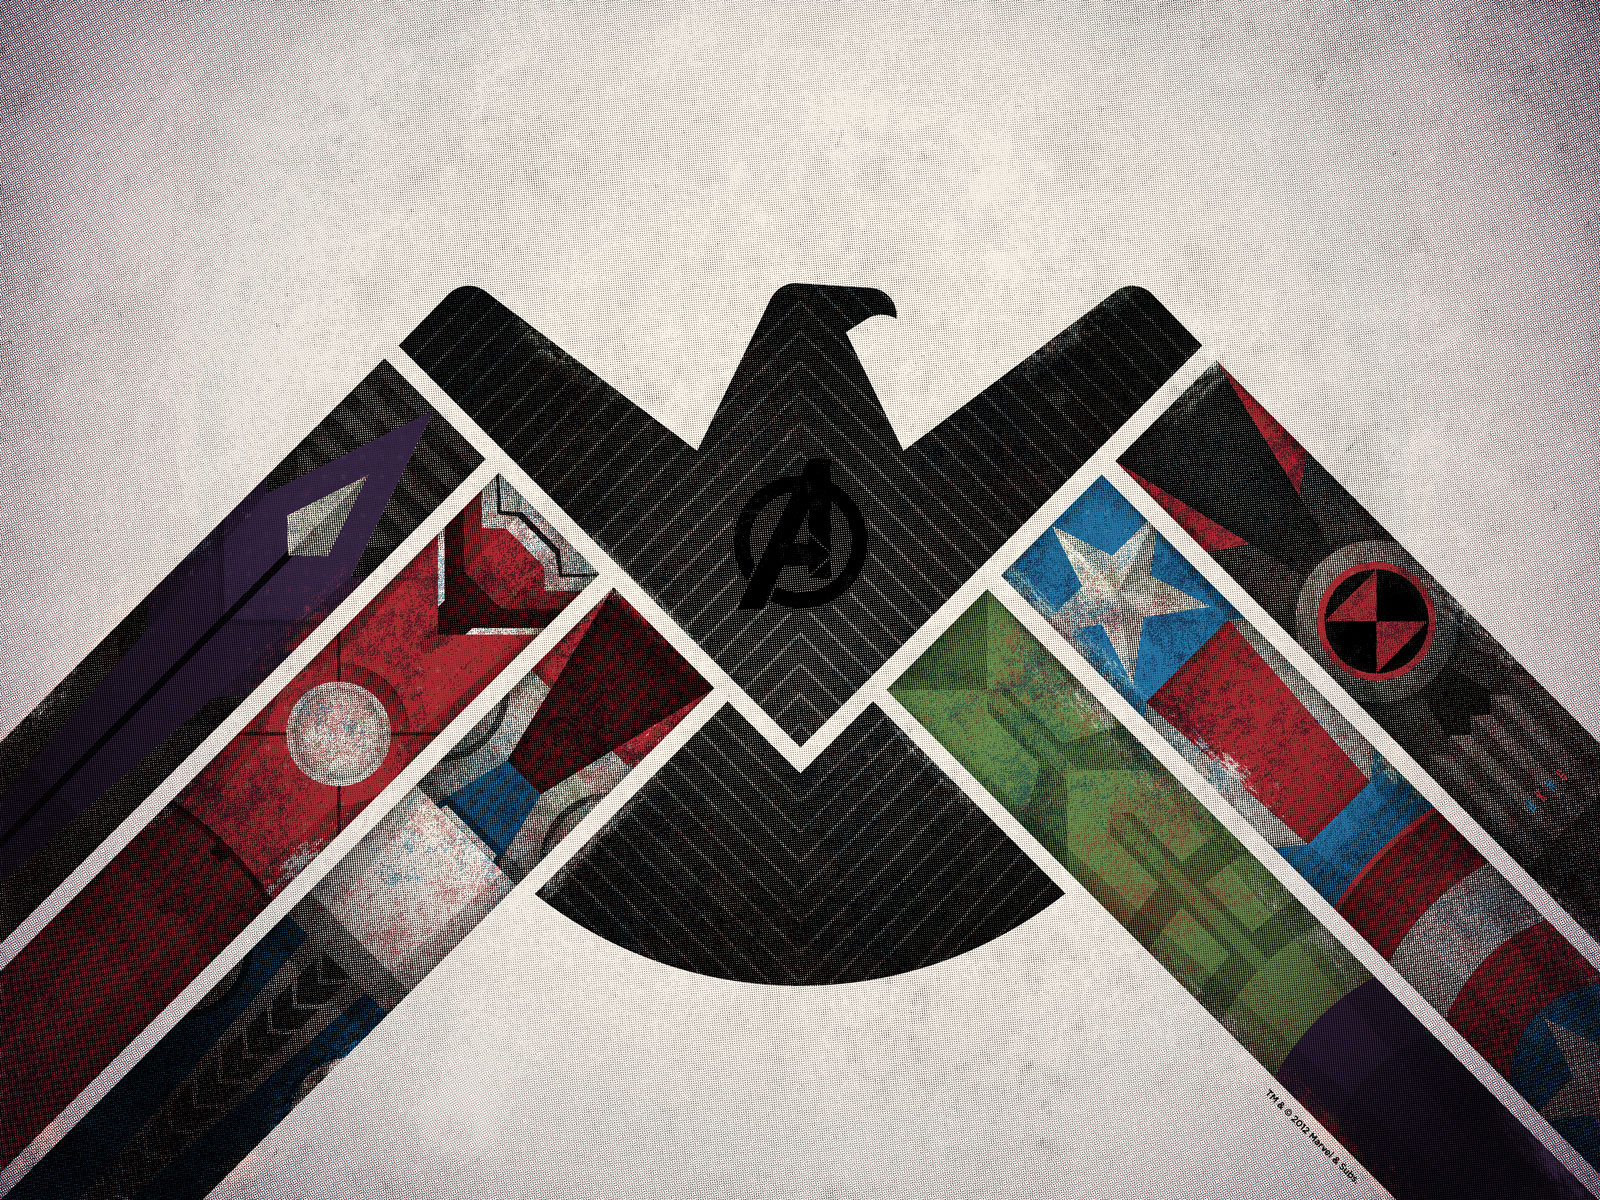 The Avengers Art Print Dkng